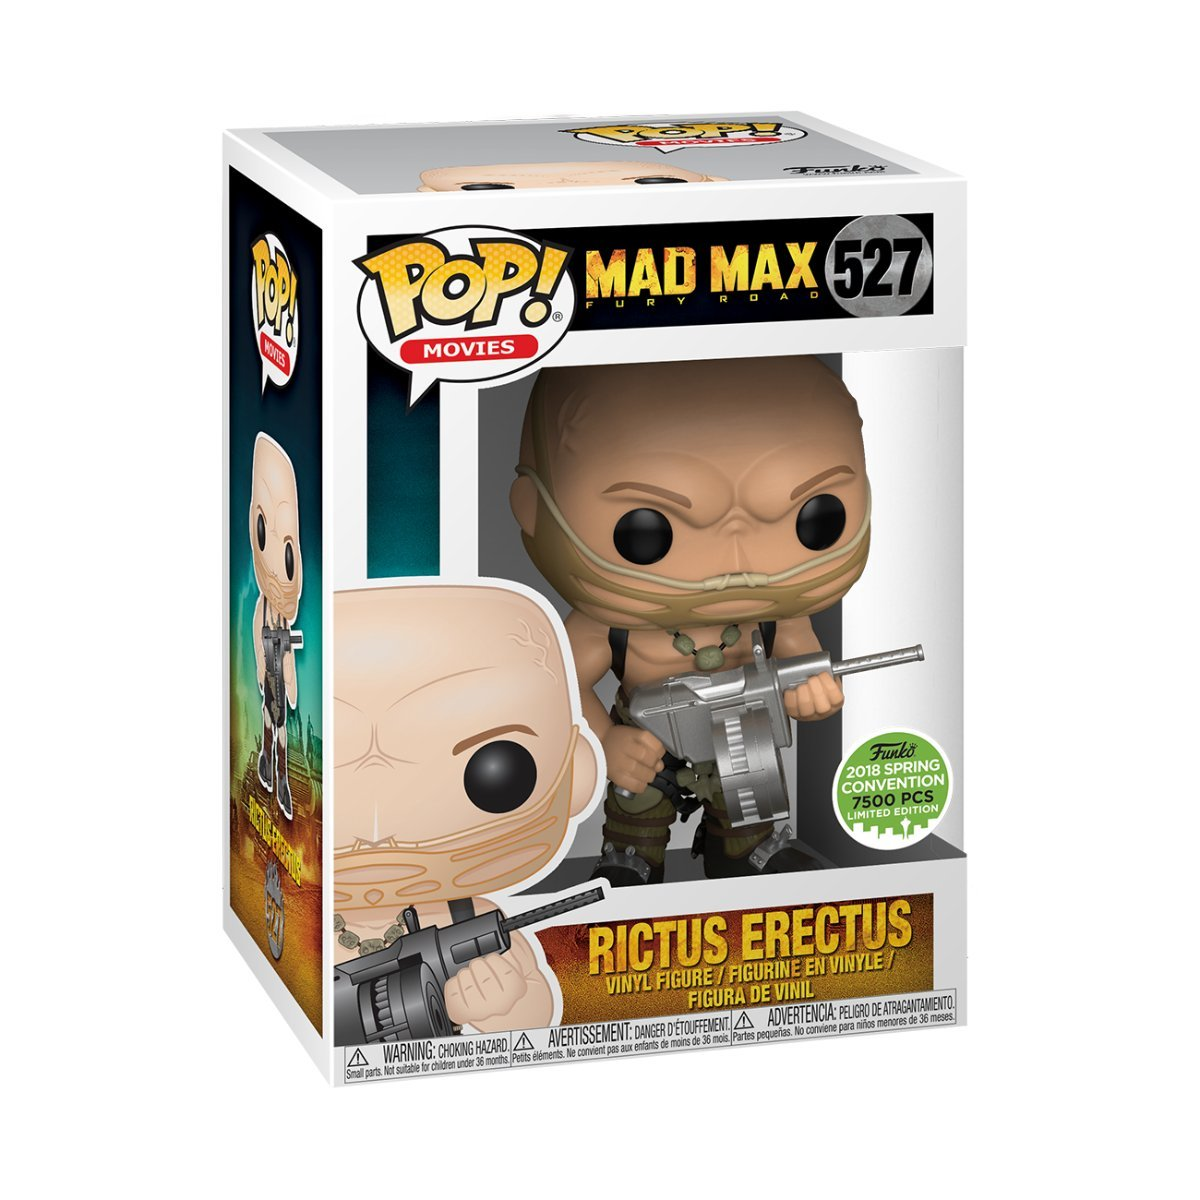 Rictus Erectus Funko POP Movies: Mad Max Fury Road 2018 Spring Convention 7500 PCS Limited Edition